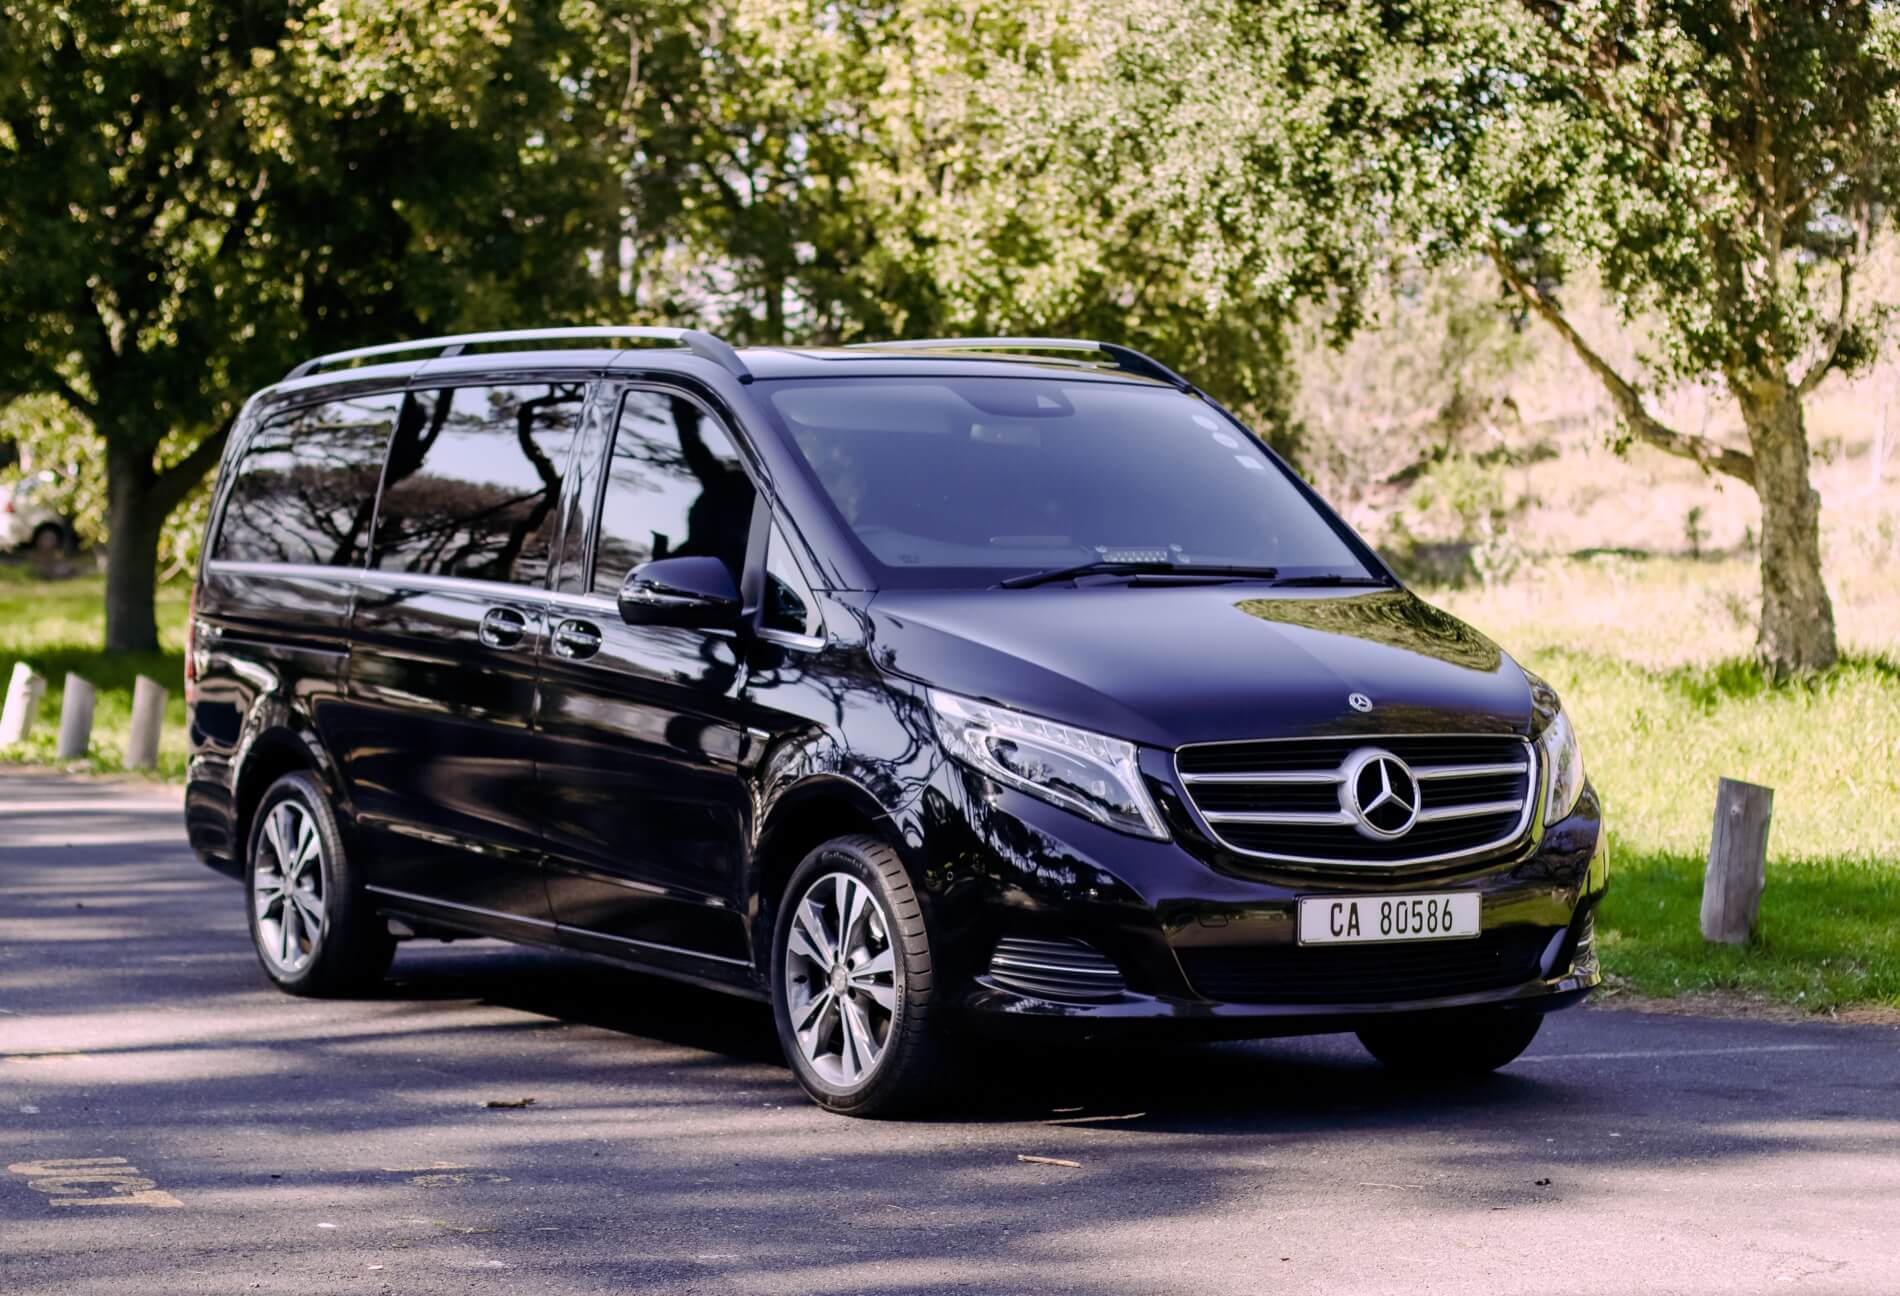 IMG_0165-SOHO-VIP-Luxury-Chauffeurs-in-Cape-Town-South-Africa